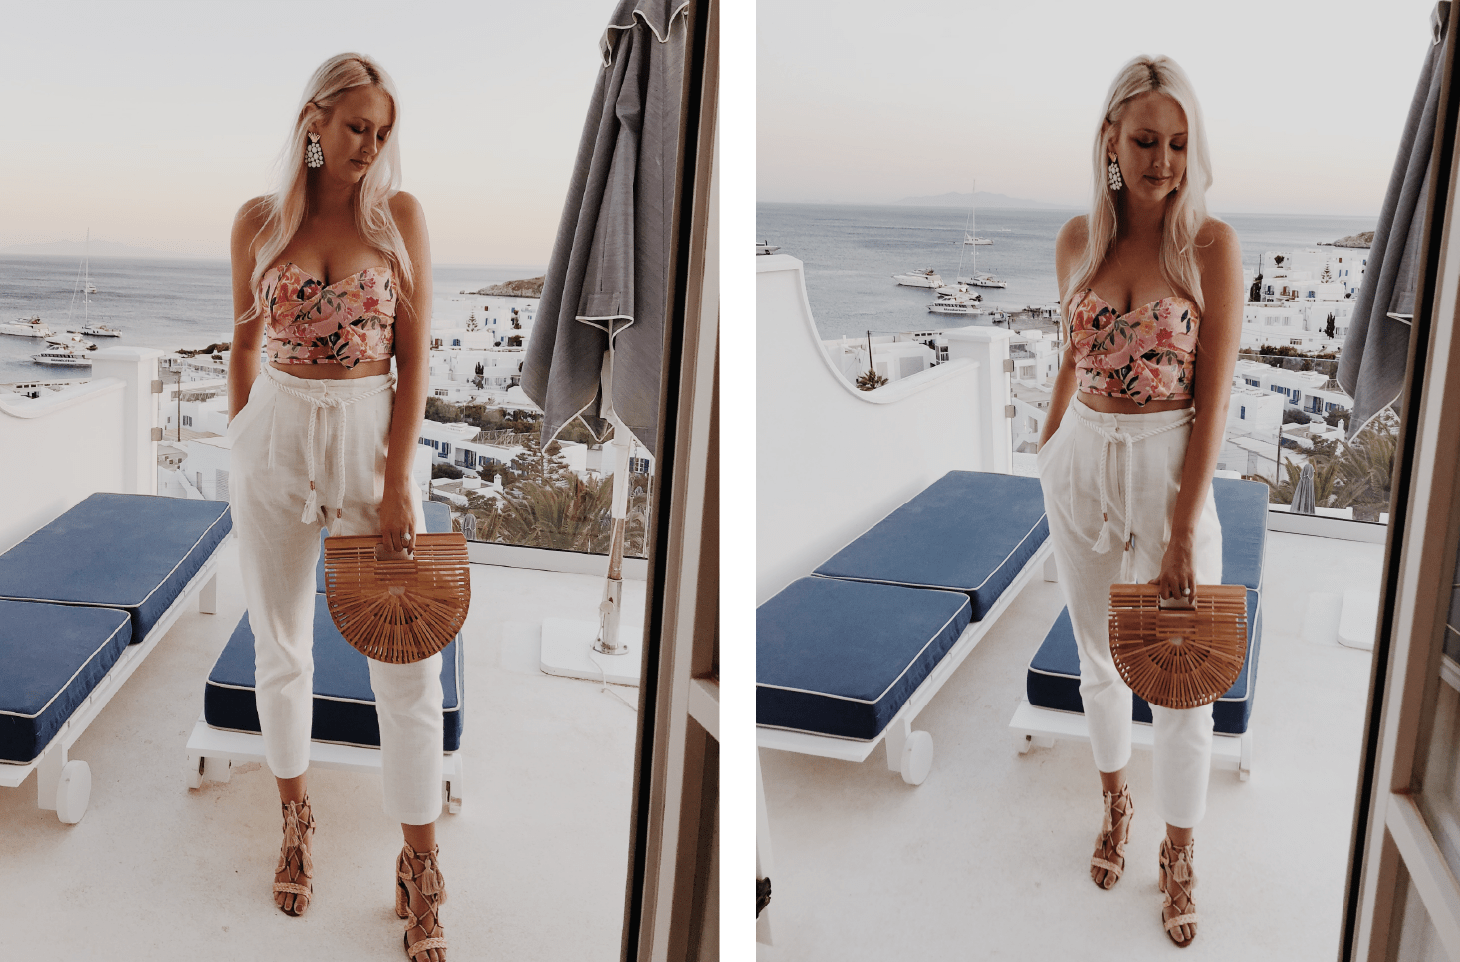 paces west guide to Mykonos